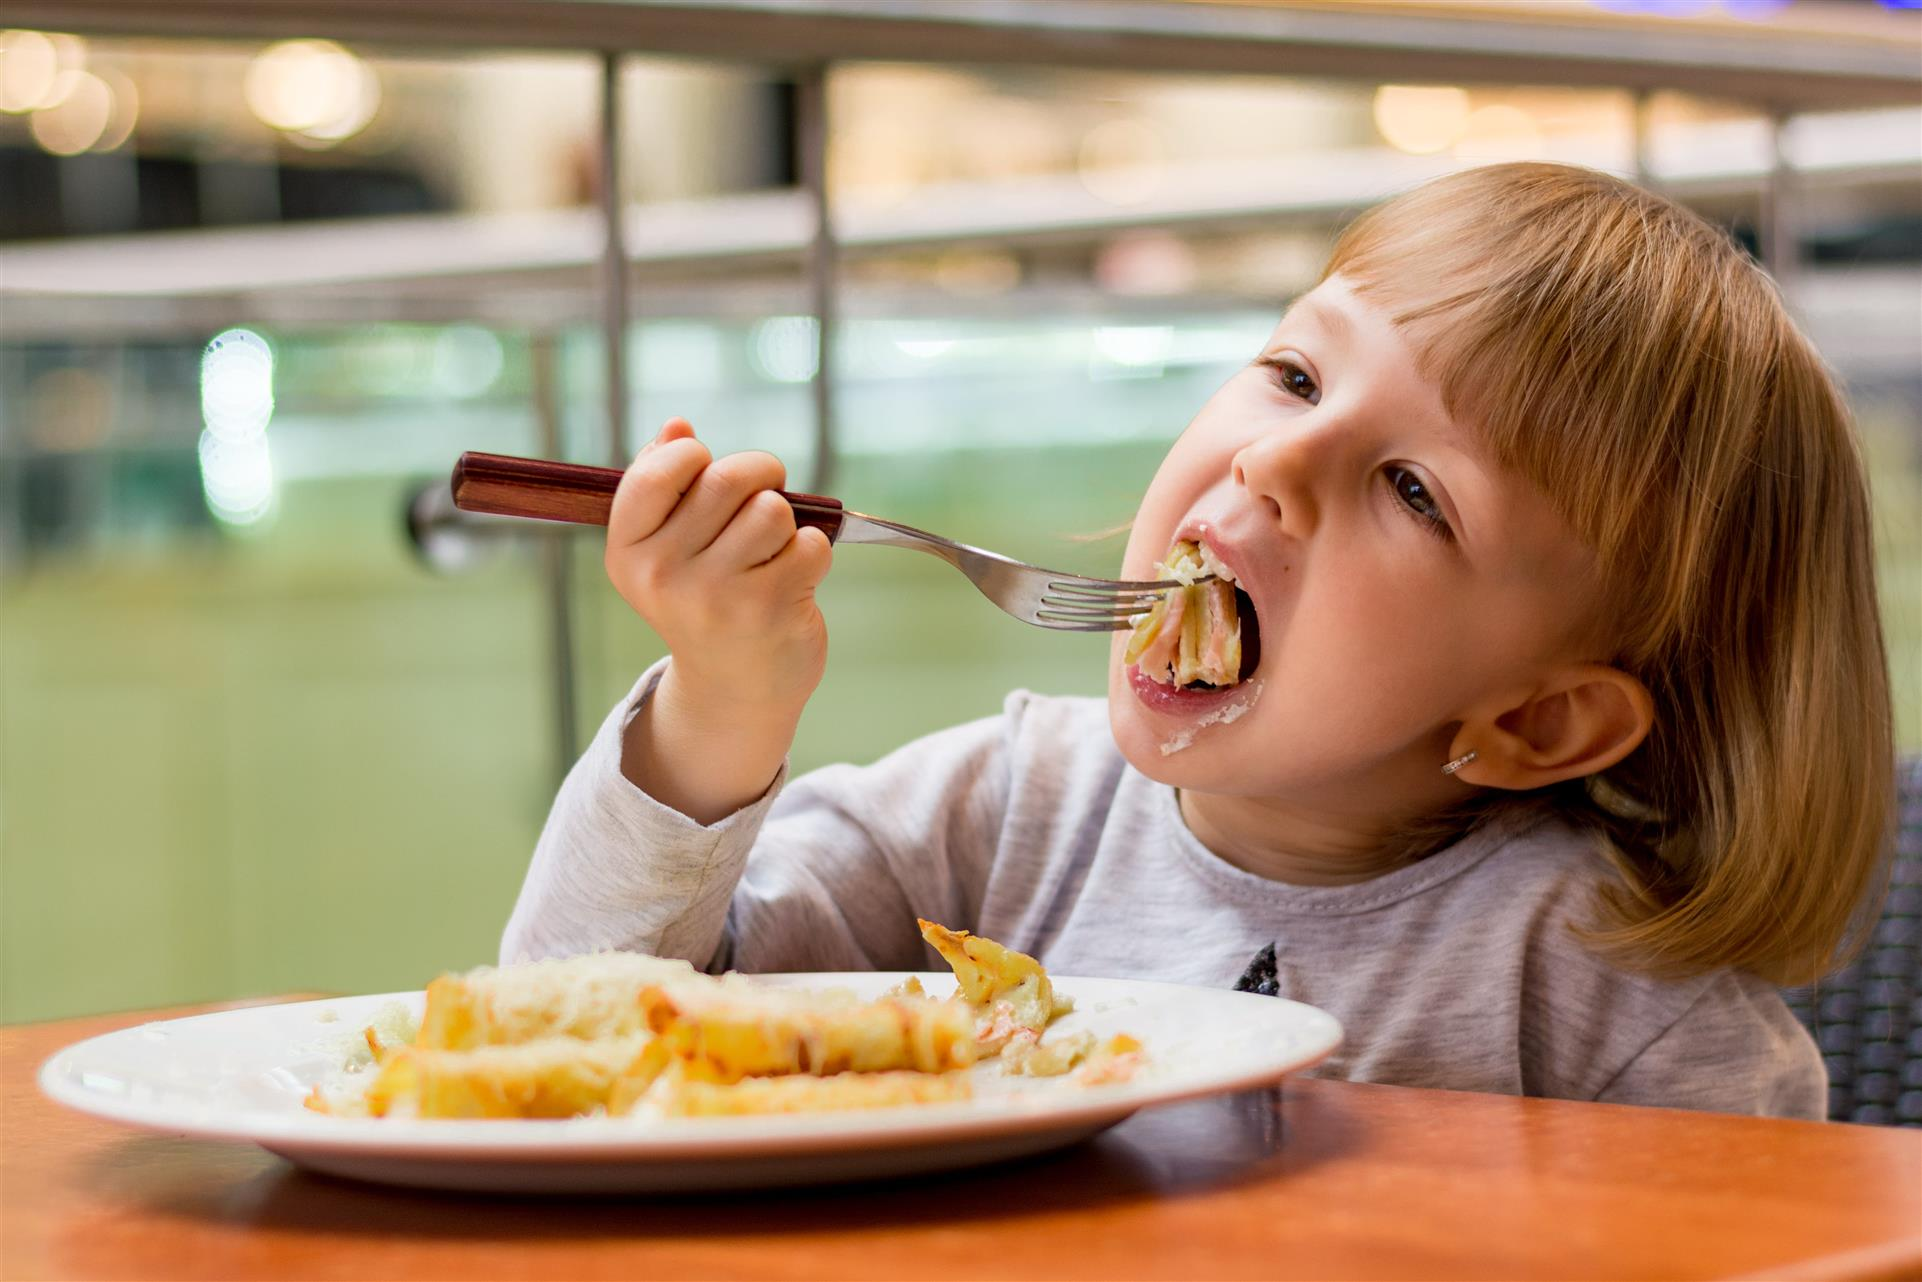 young girl eating at table and putting a piece of pancake in her mouth using a fork